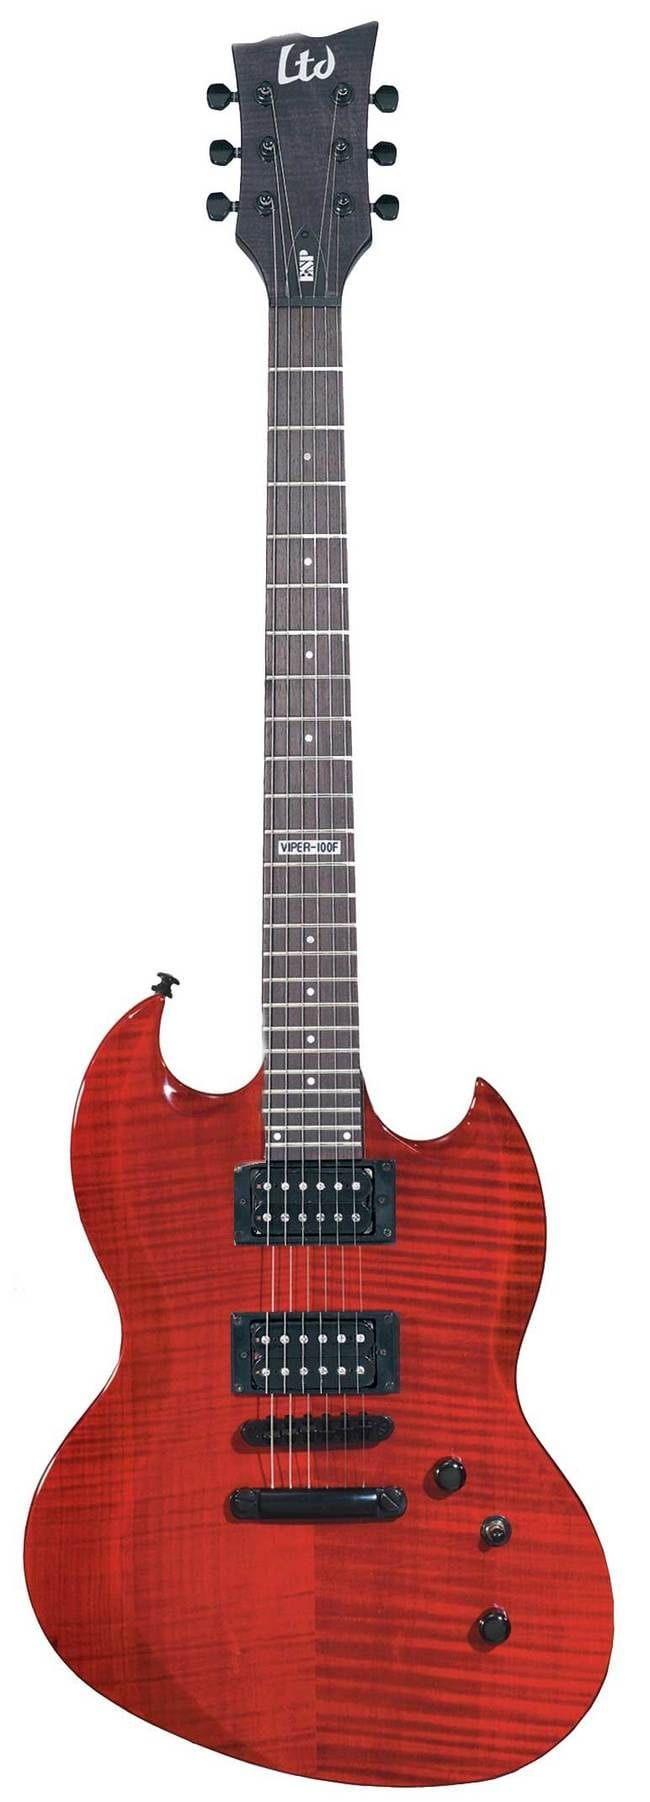 LVP-100FMSTBC: LTD VP-100 FM STBC VIPER FLAME TOP